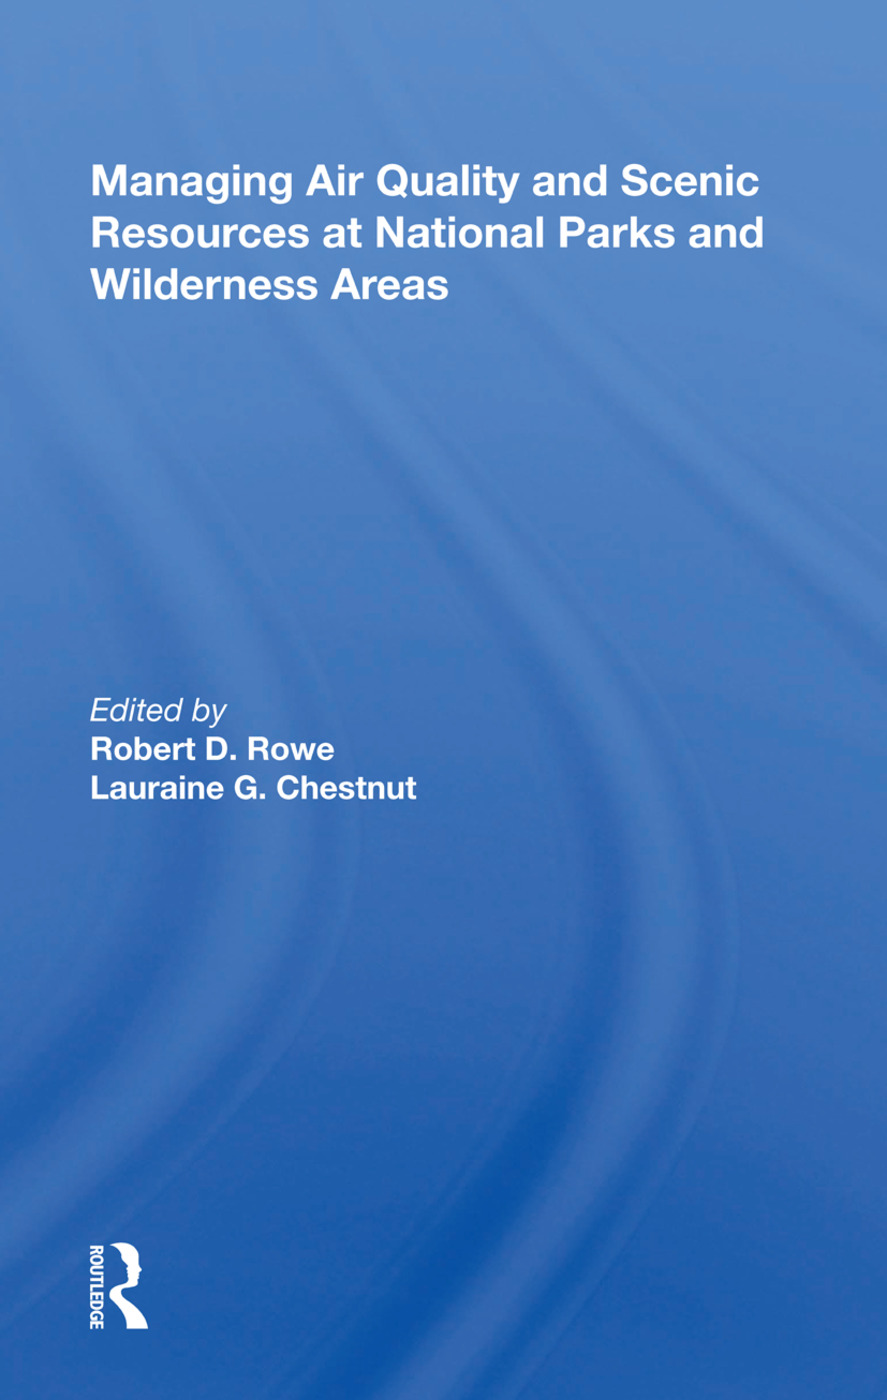 Managing Air Quality And Scenic Resources At National Parks And Wilderness Areas book cover